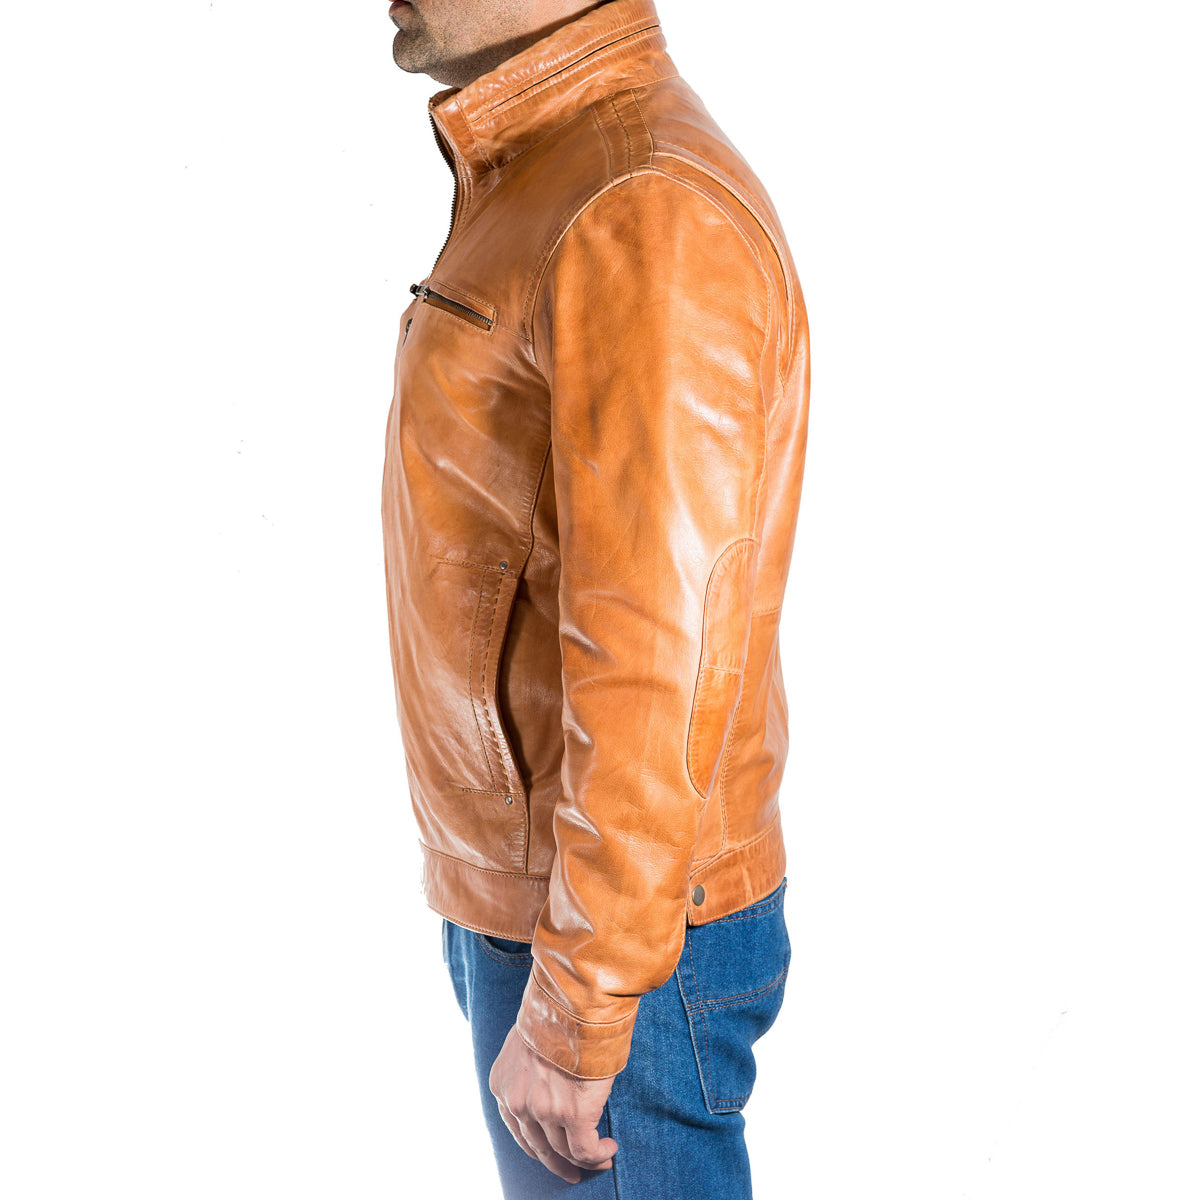 Mens waxed lab leather smart casual retro vintage biker jacket.